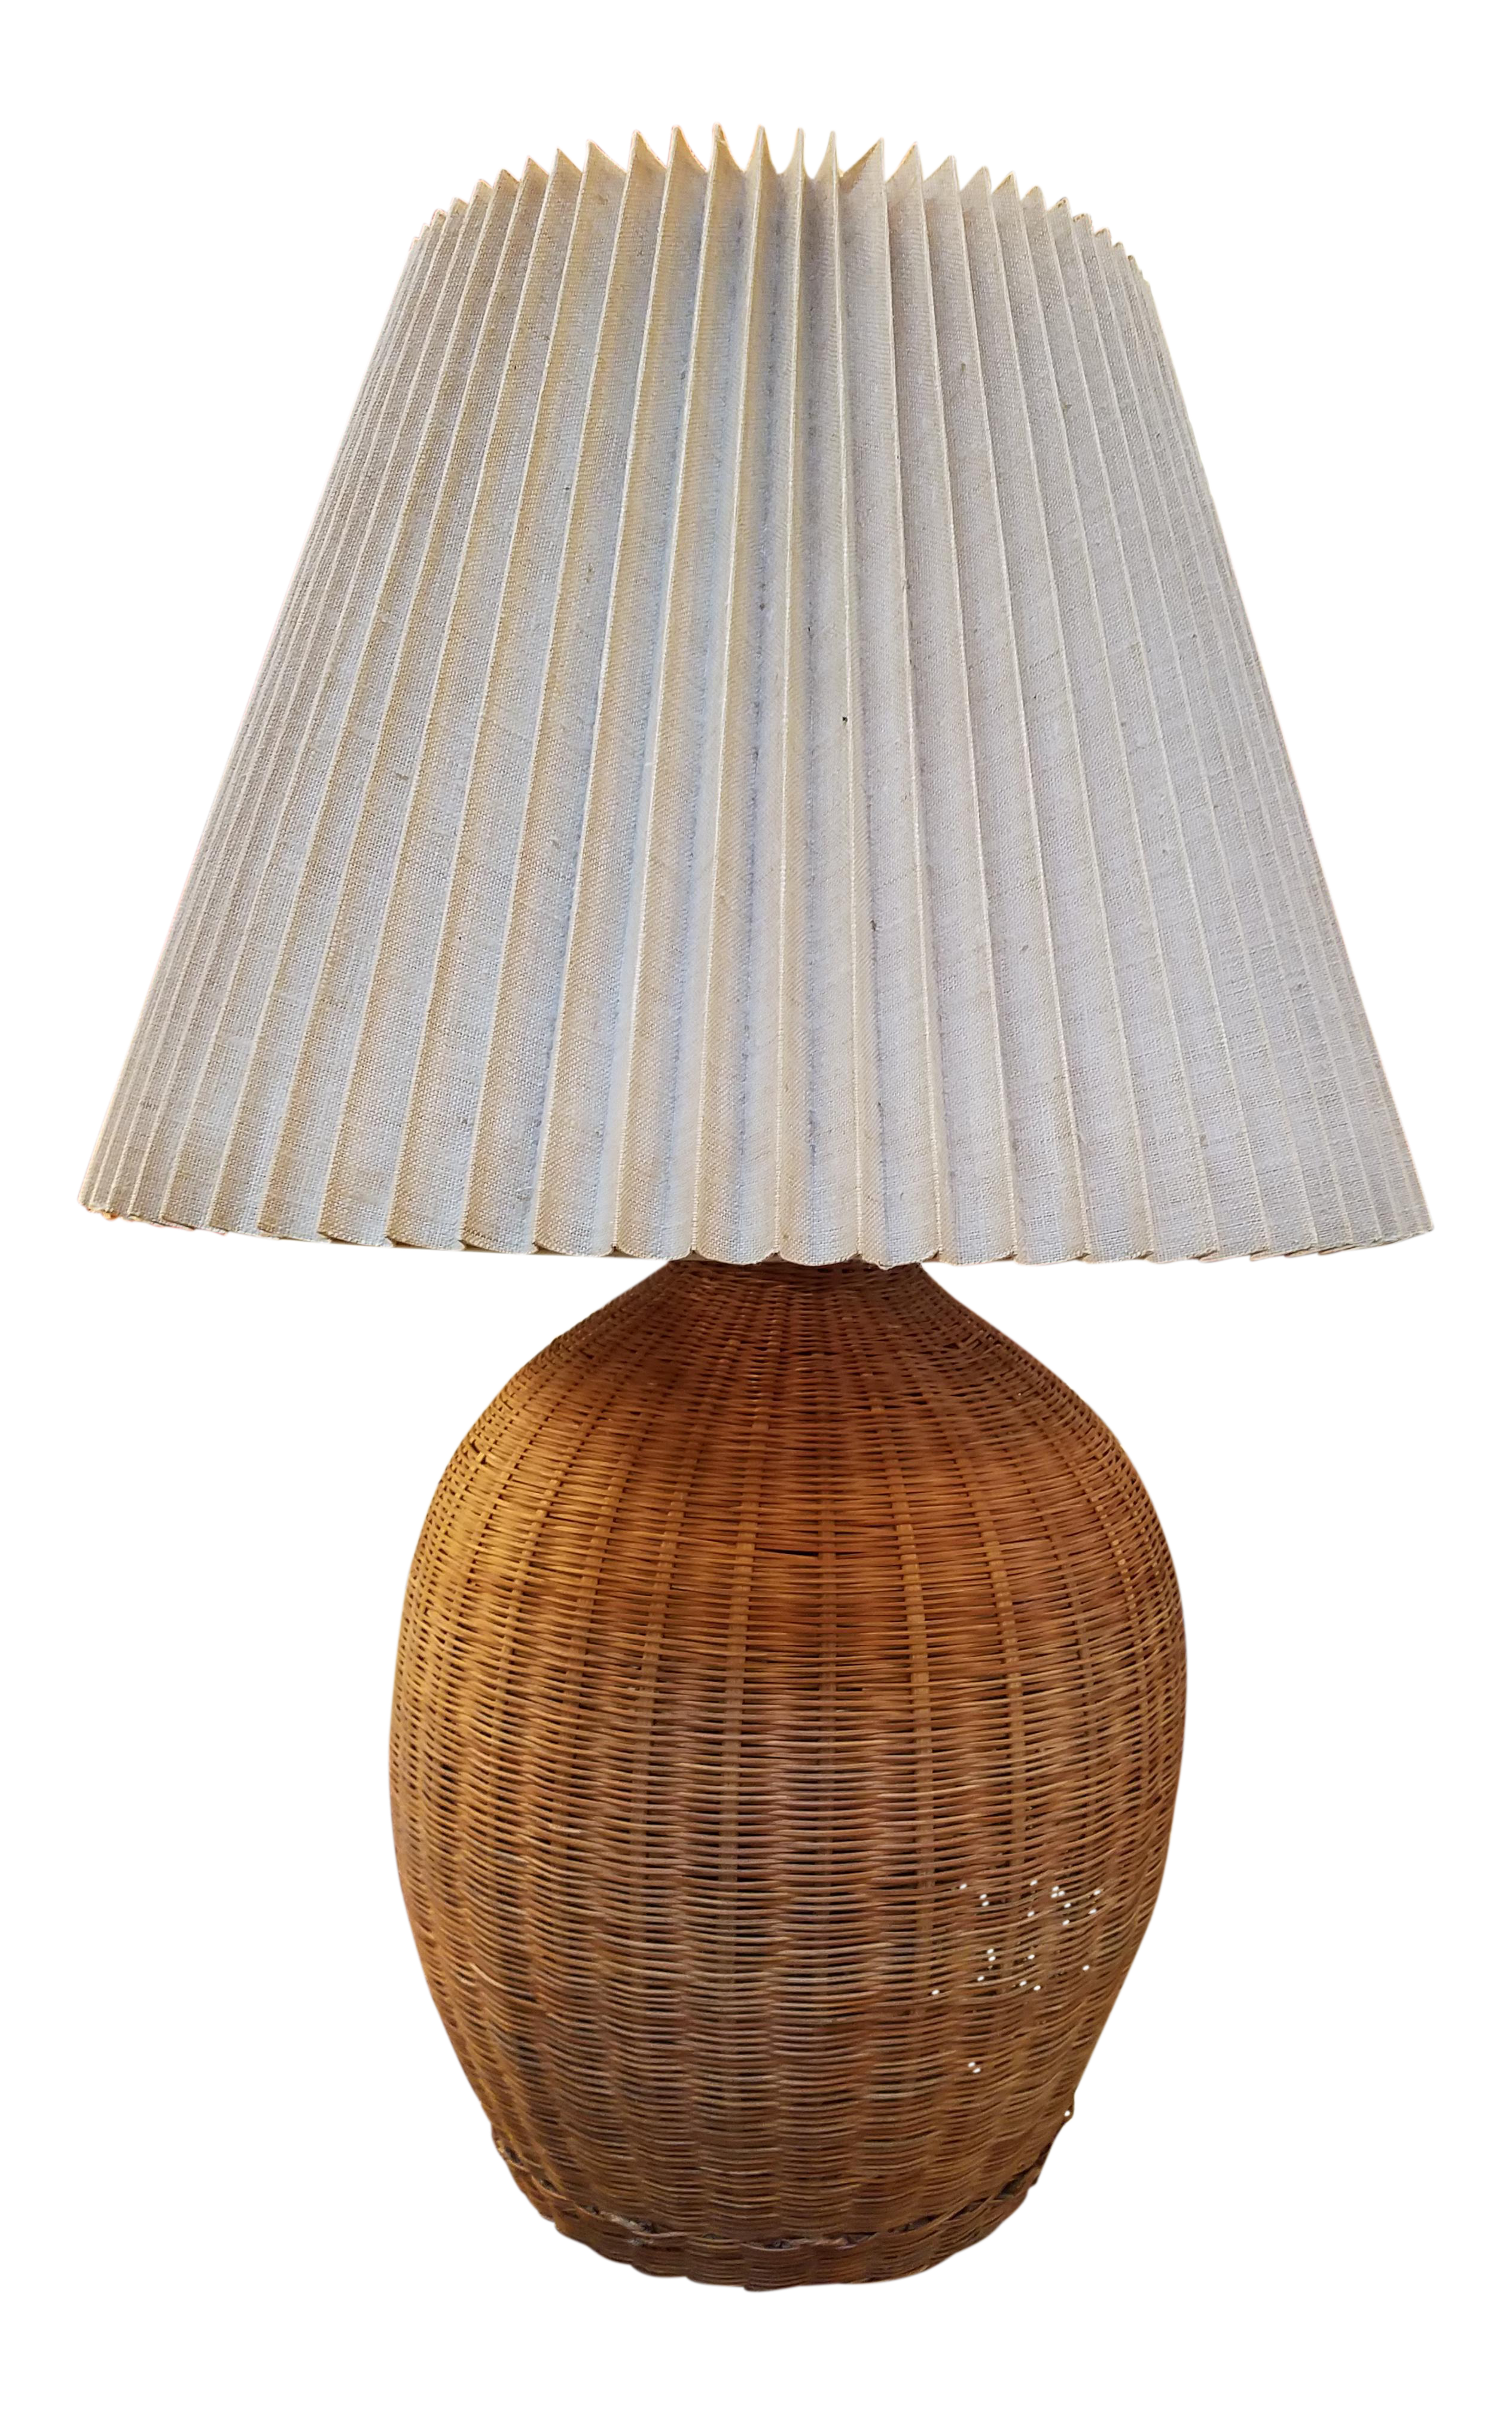 Charming 1960s Boho Chic Natural Wicker Table Lamp